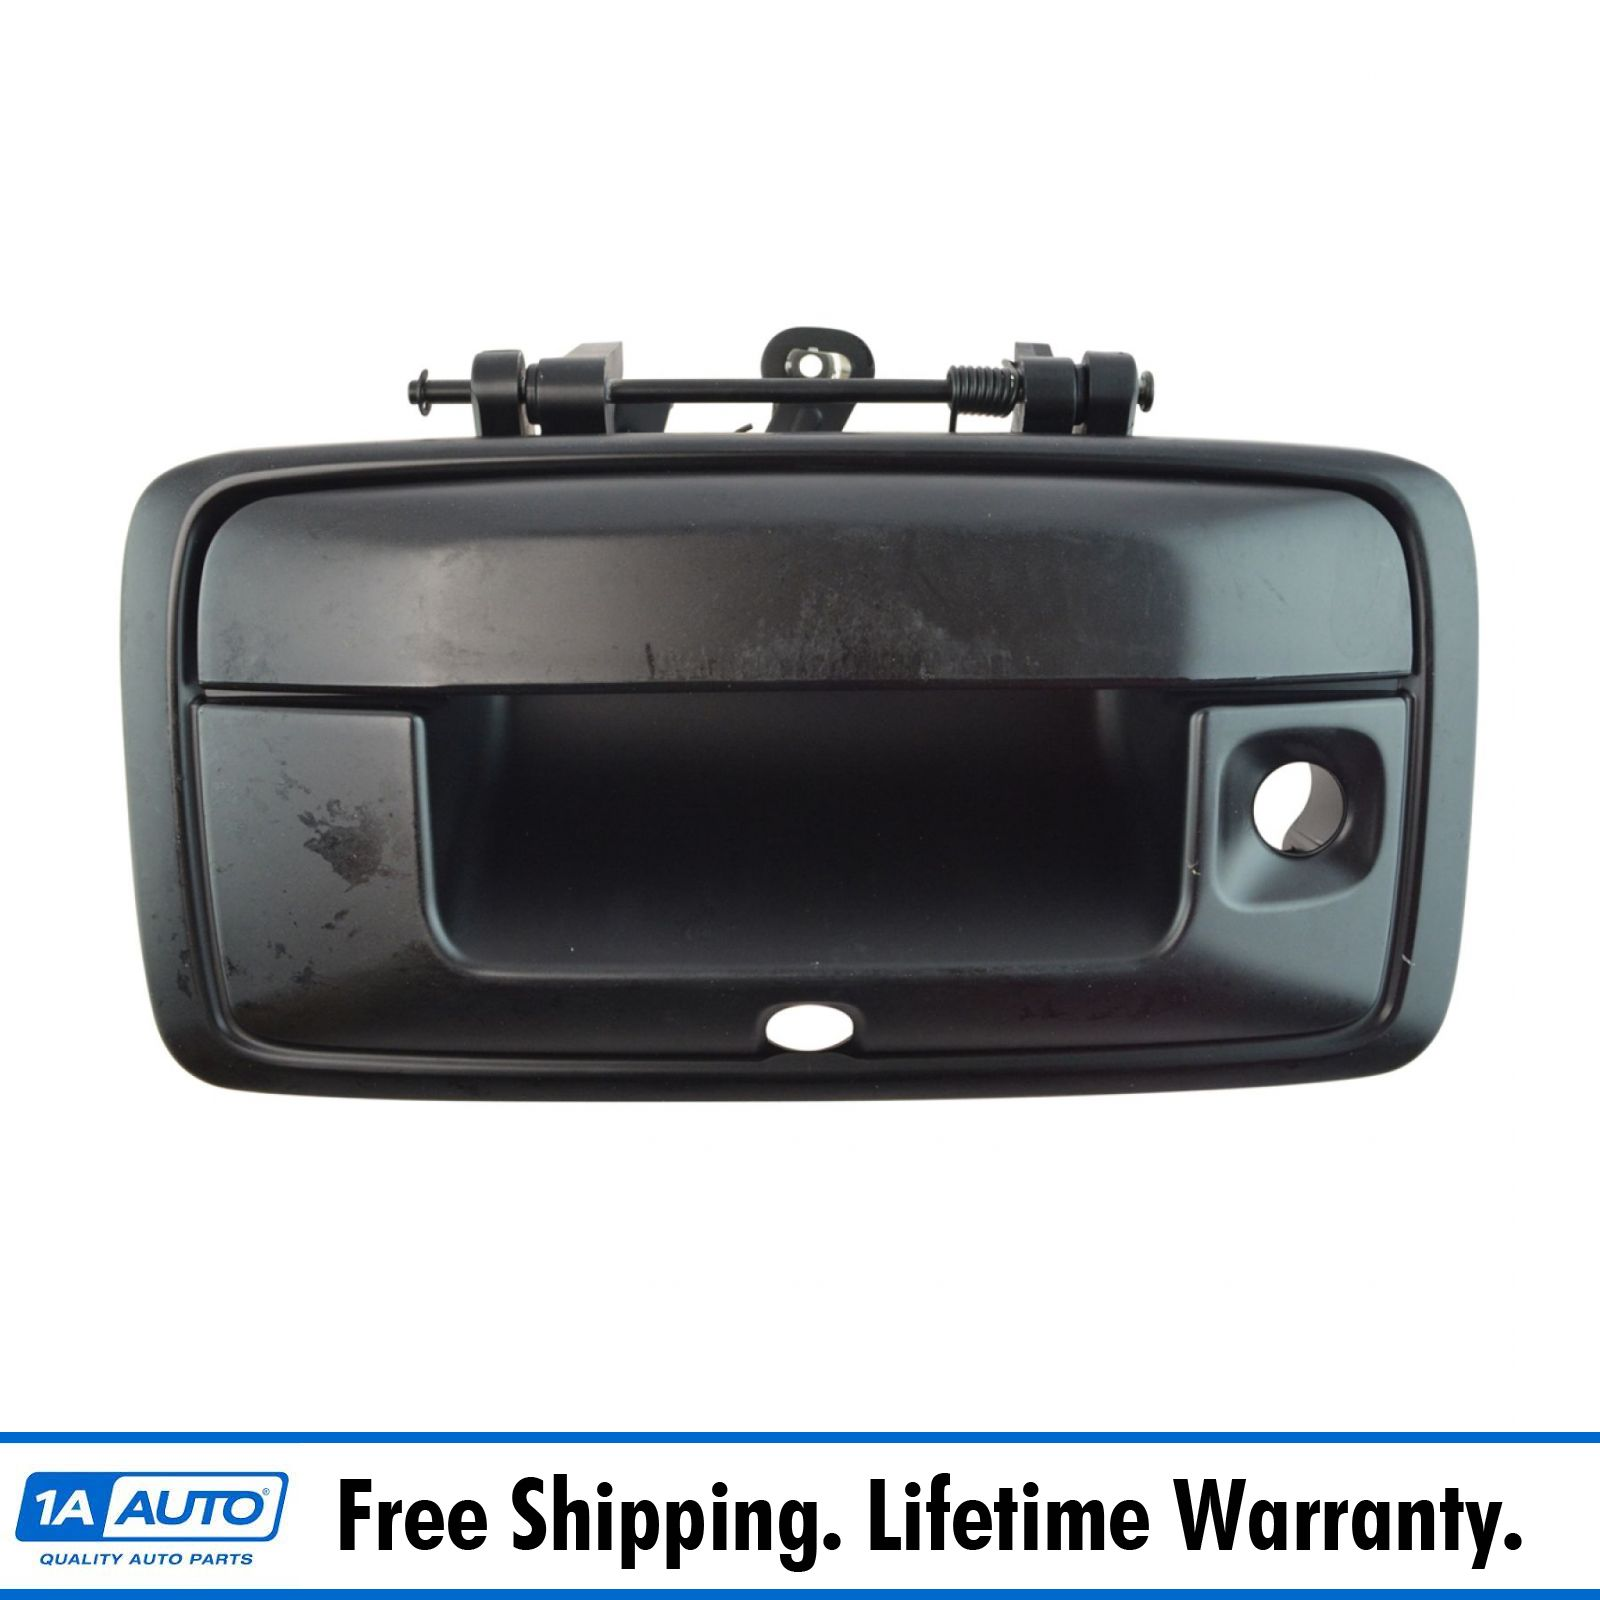 Textured Black Tailgate Handle PT Auto Warehouse TO-3244A-TG